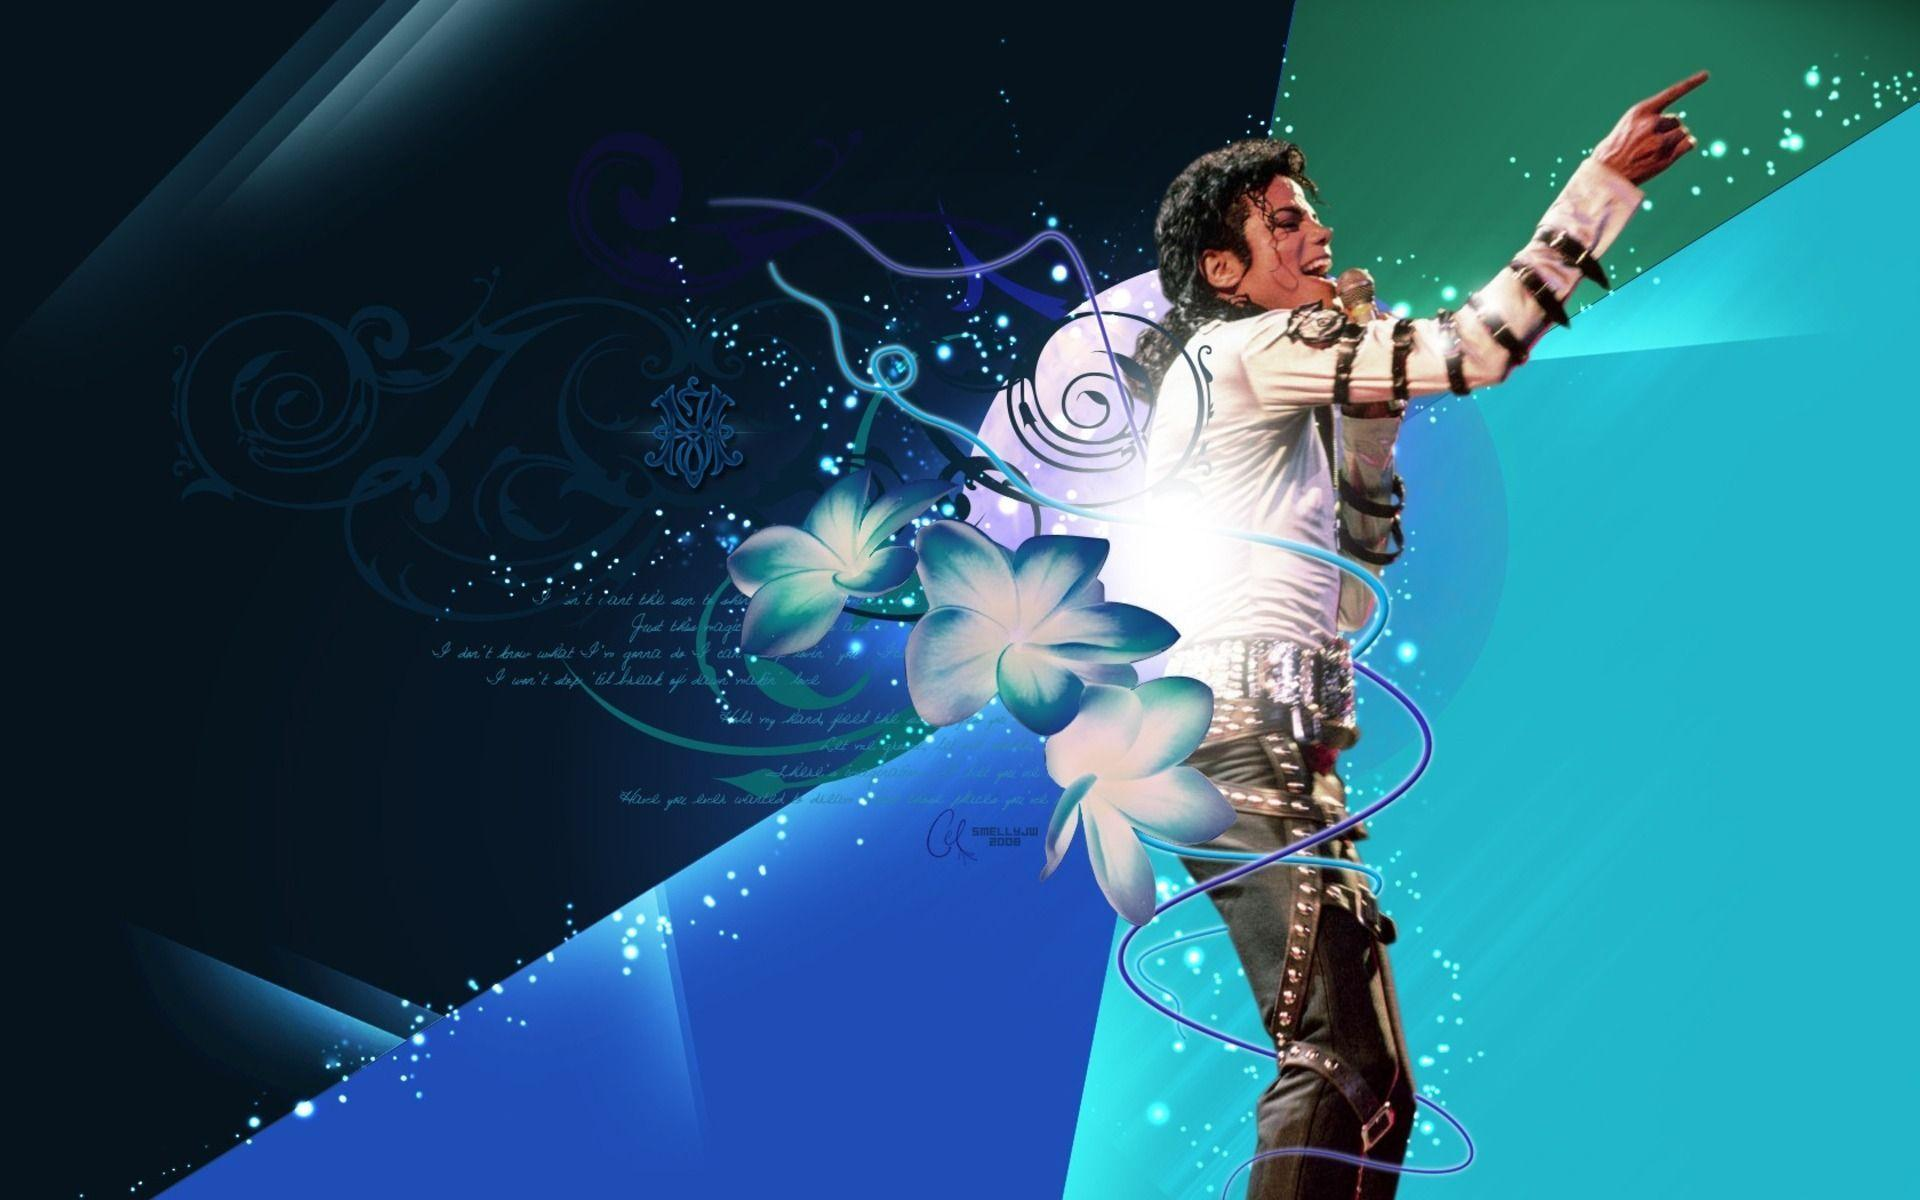 Michael Jackson Wallpapers Hd - 1286739